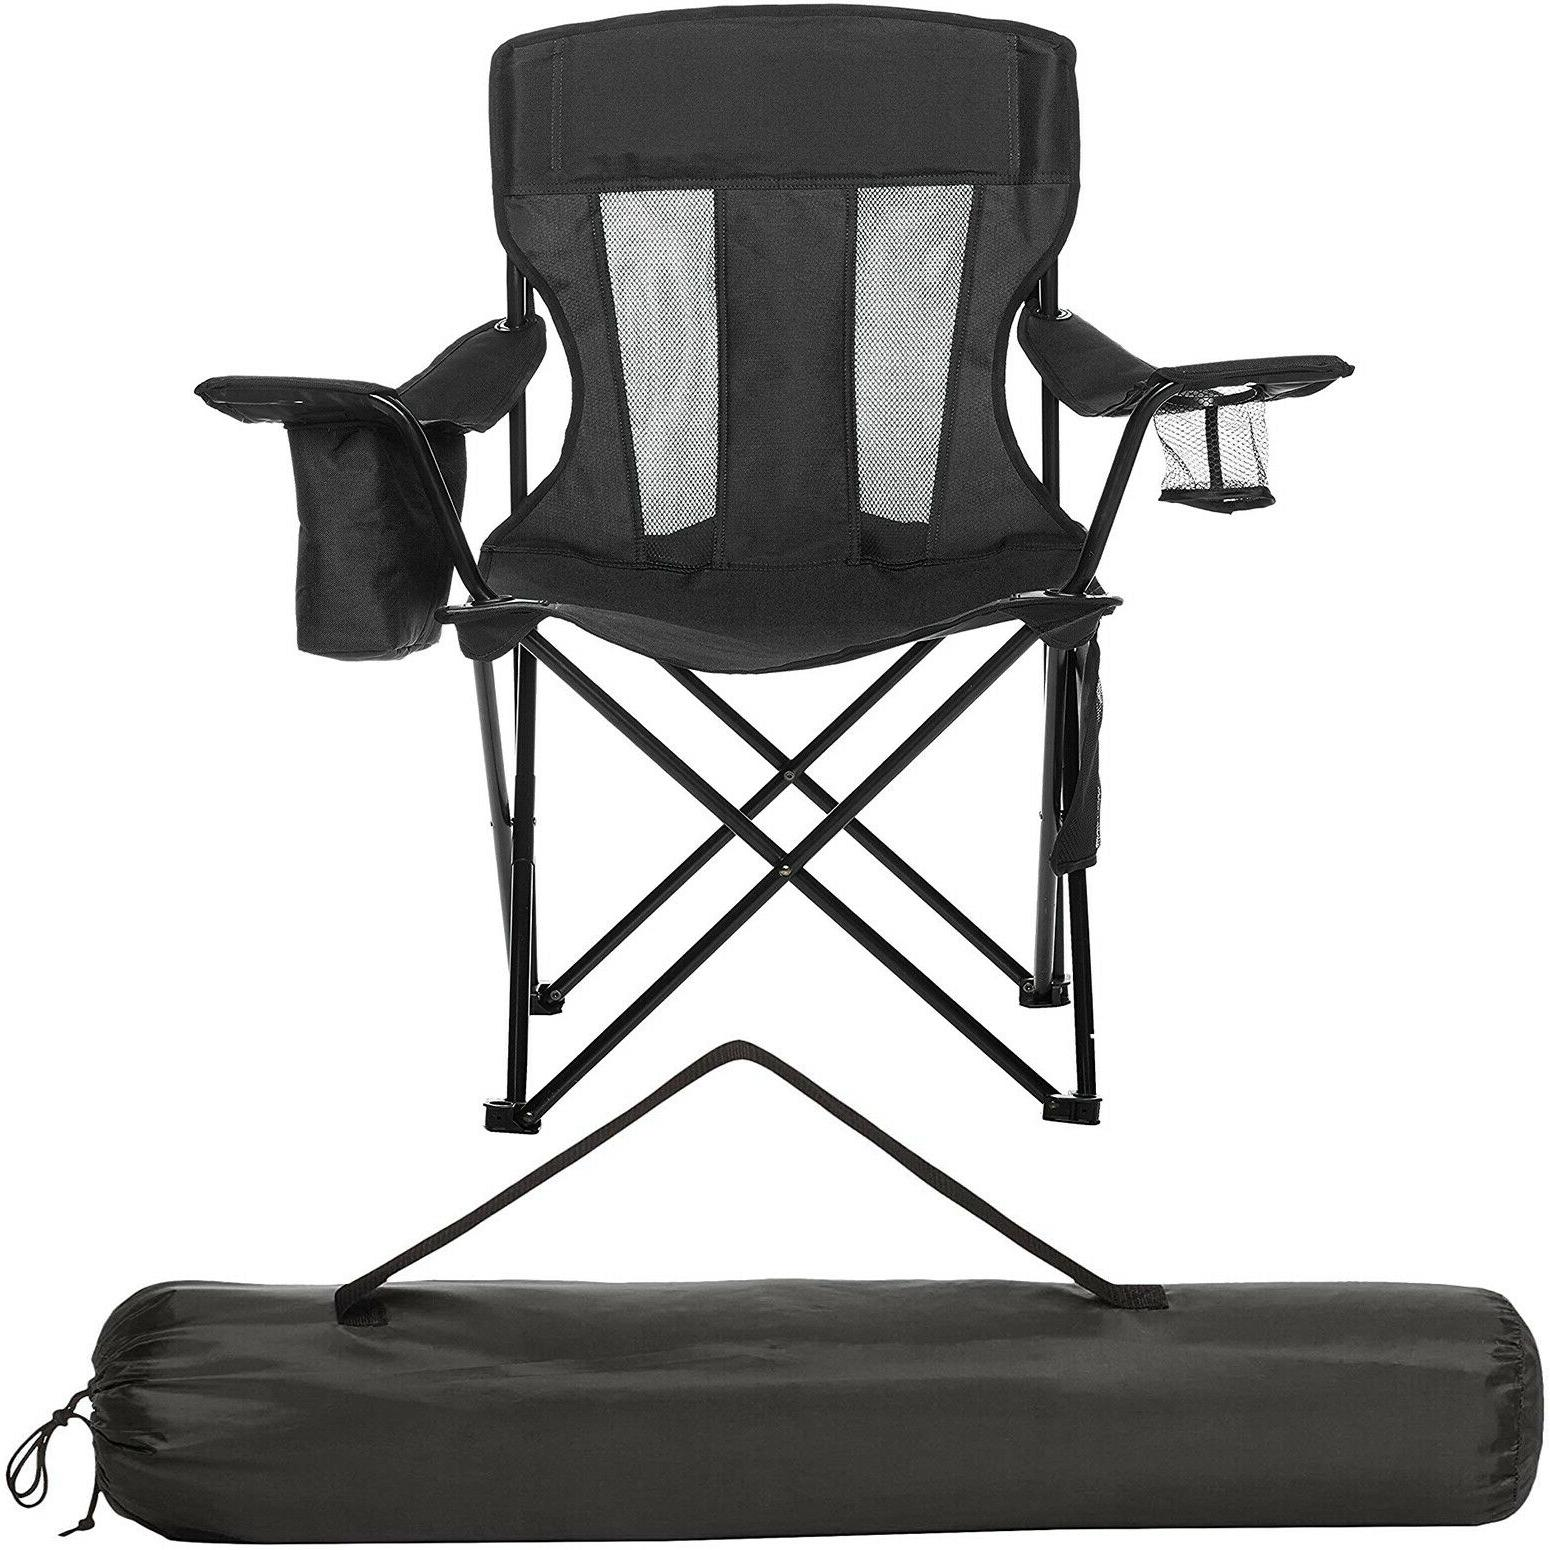 Heavy Duty Outdoor Chairs Heavy Duty Camping Chair Mesh Portable F